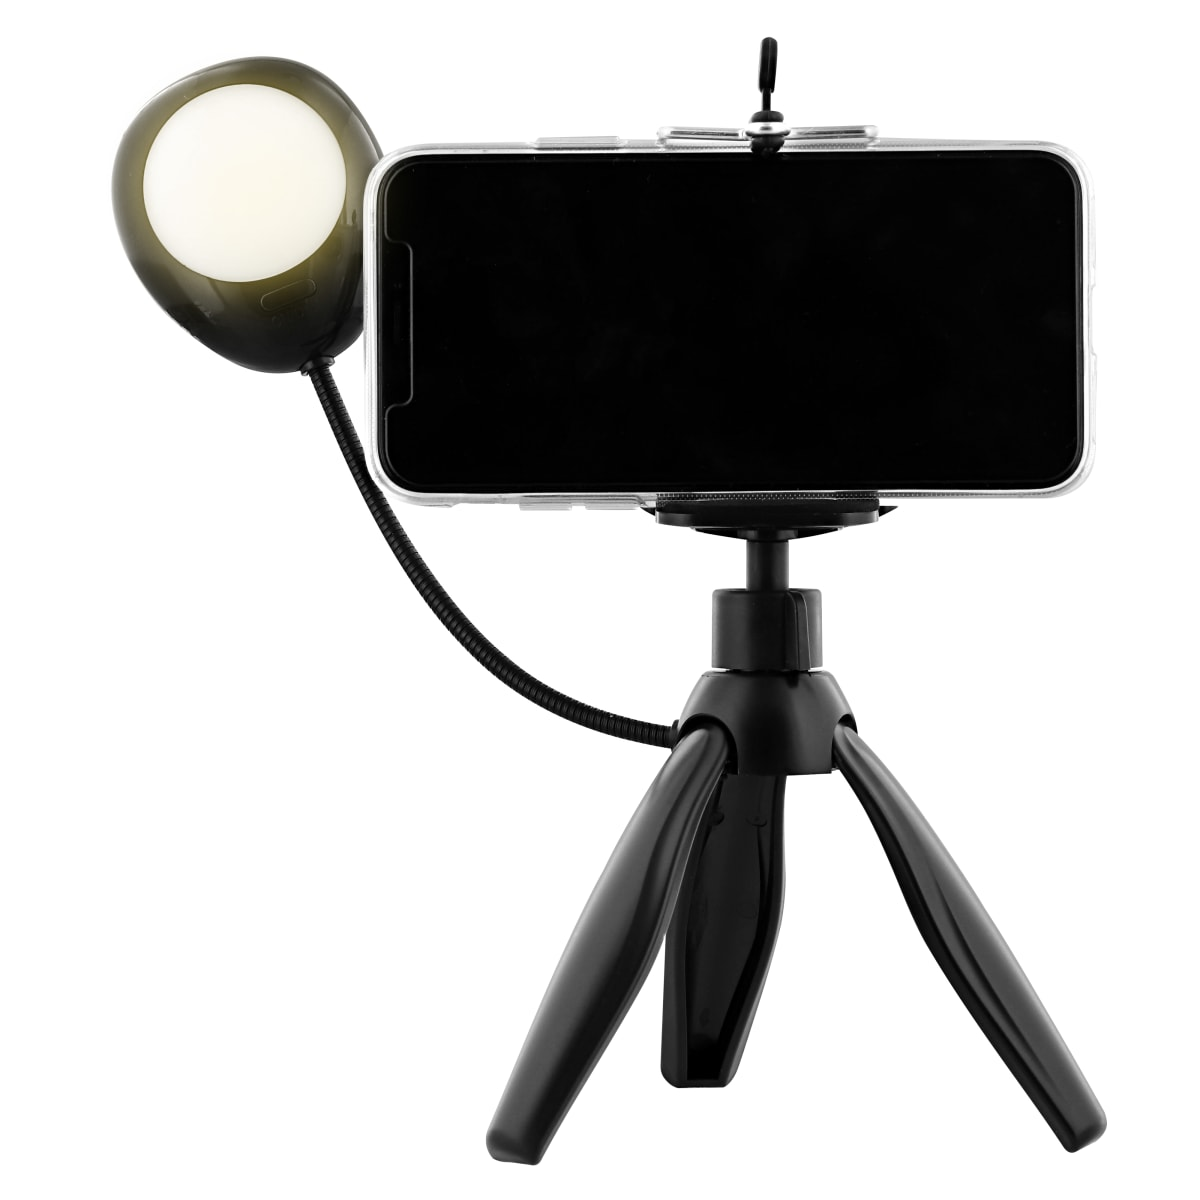 Mini tripod for smartphone with LED - INFLUENCE